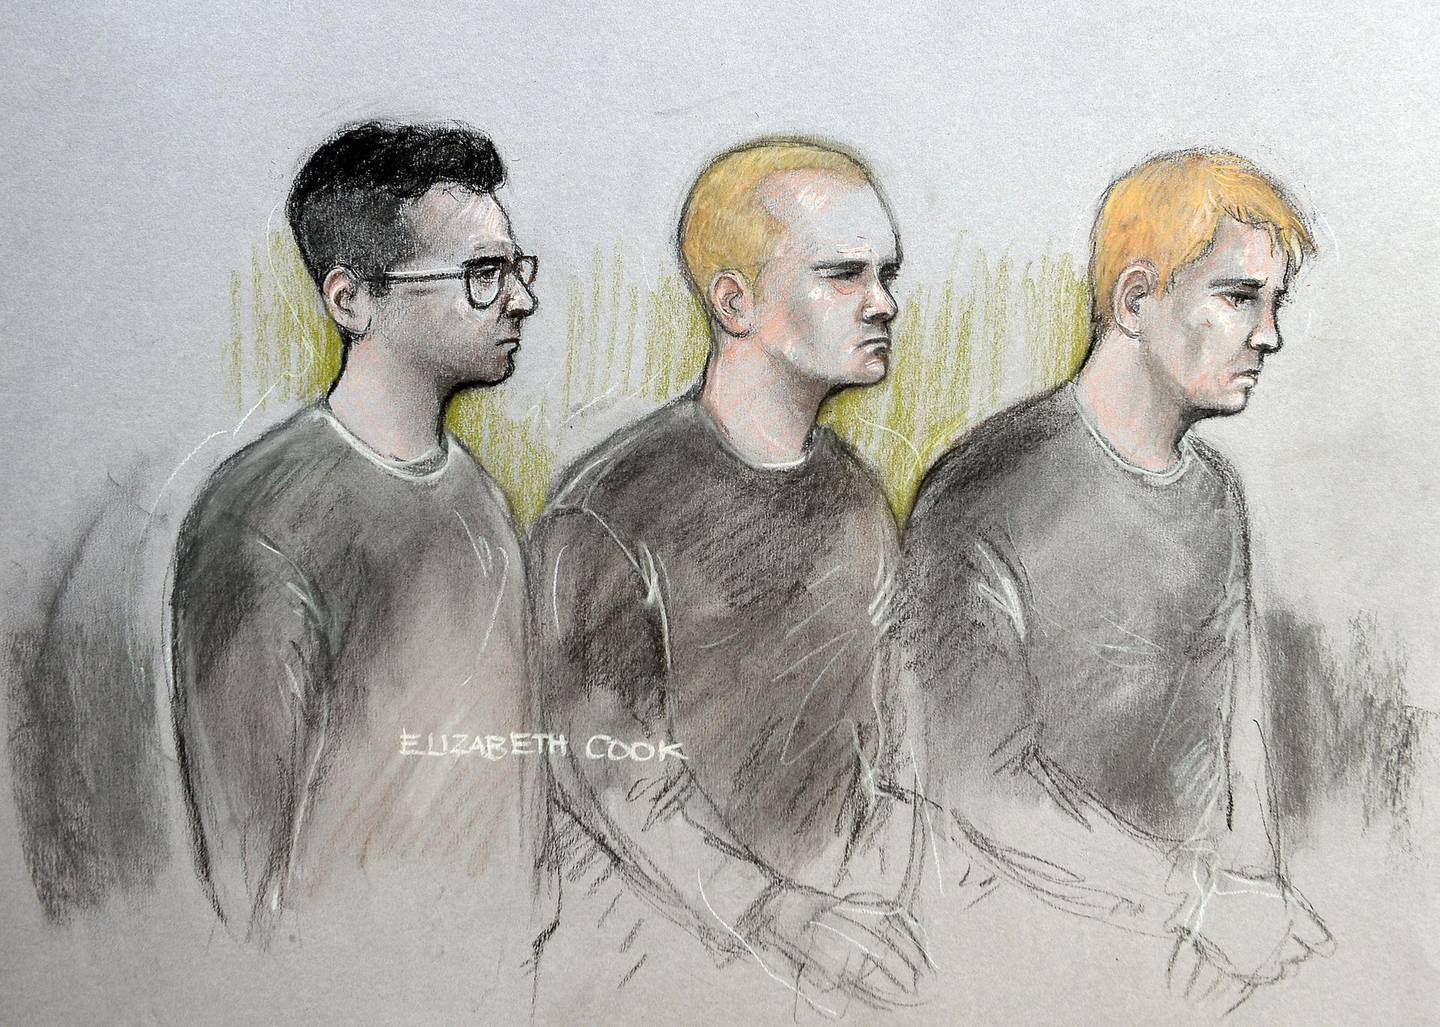 K6DMW1 Court artist sketch by Elizabeth Cook of (from the left) Alexander Deakin, 22, Mikko Vehvilainen, 32, and Mark Barrett, 24, appearing at Westminster Magistrates' Court in London where they have been charged with terrorism offences as part of an investigation into banned neo-Nazi group National Action.